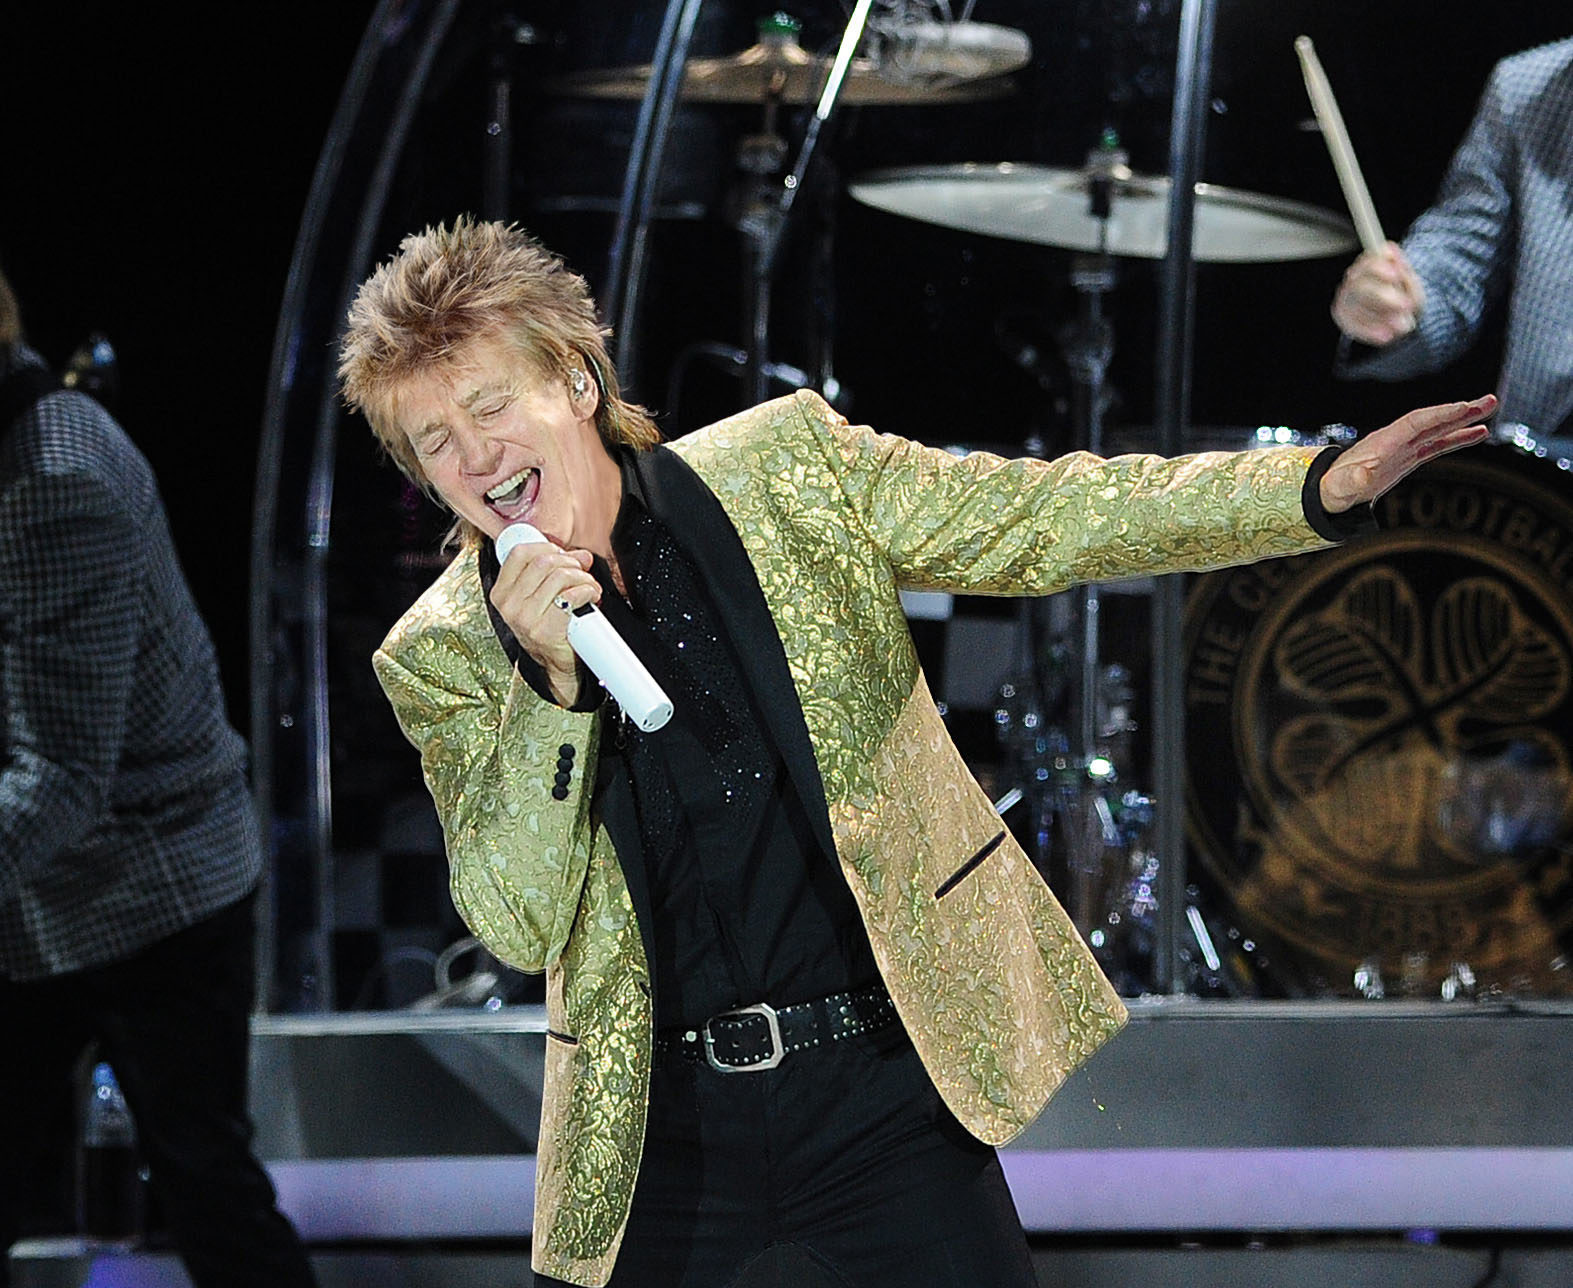 Rod Stewart to play Aberdeen's P&J Live in December